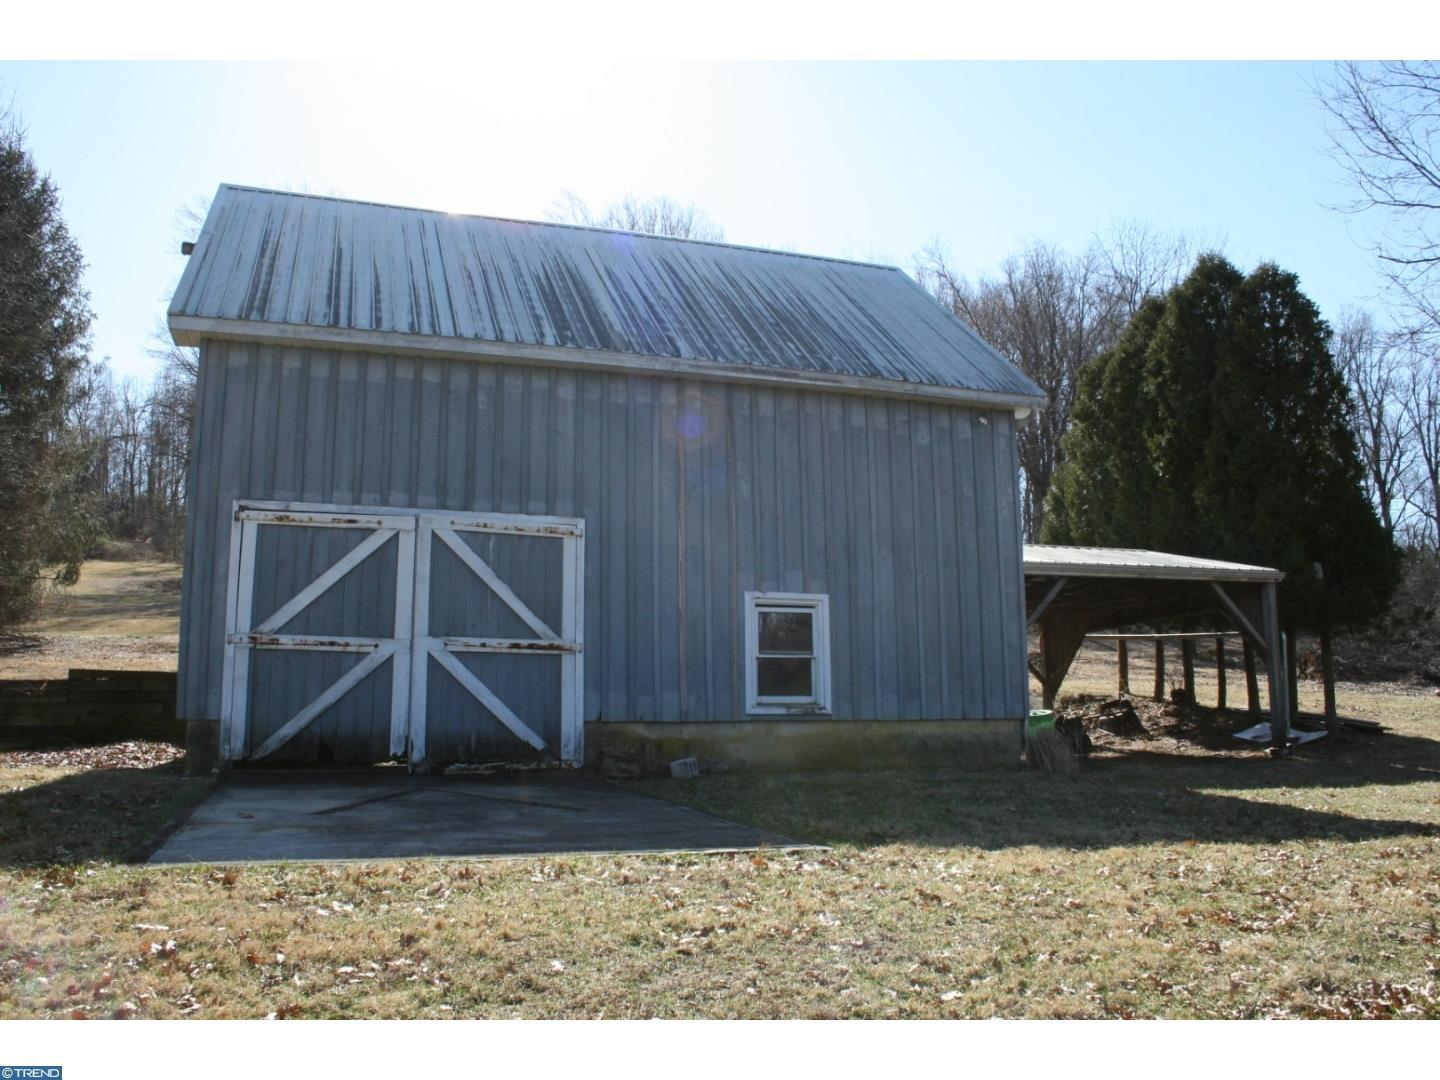 outbuilding on 2 acres